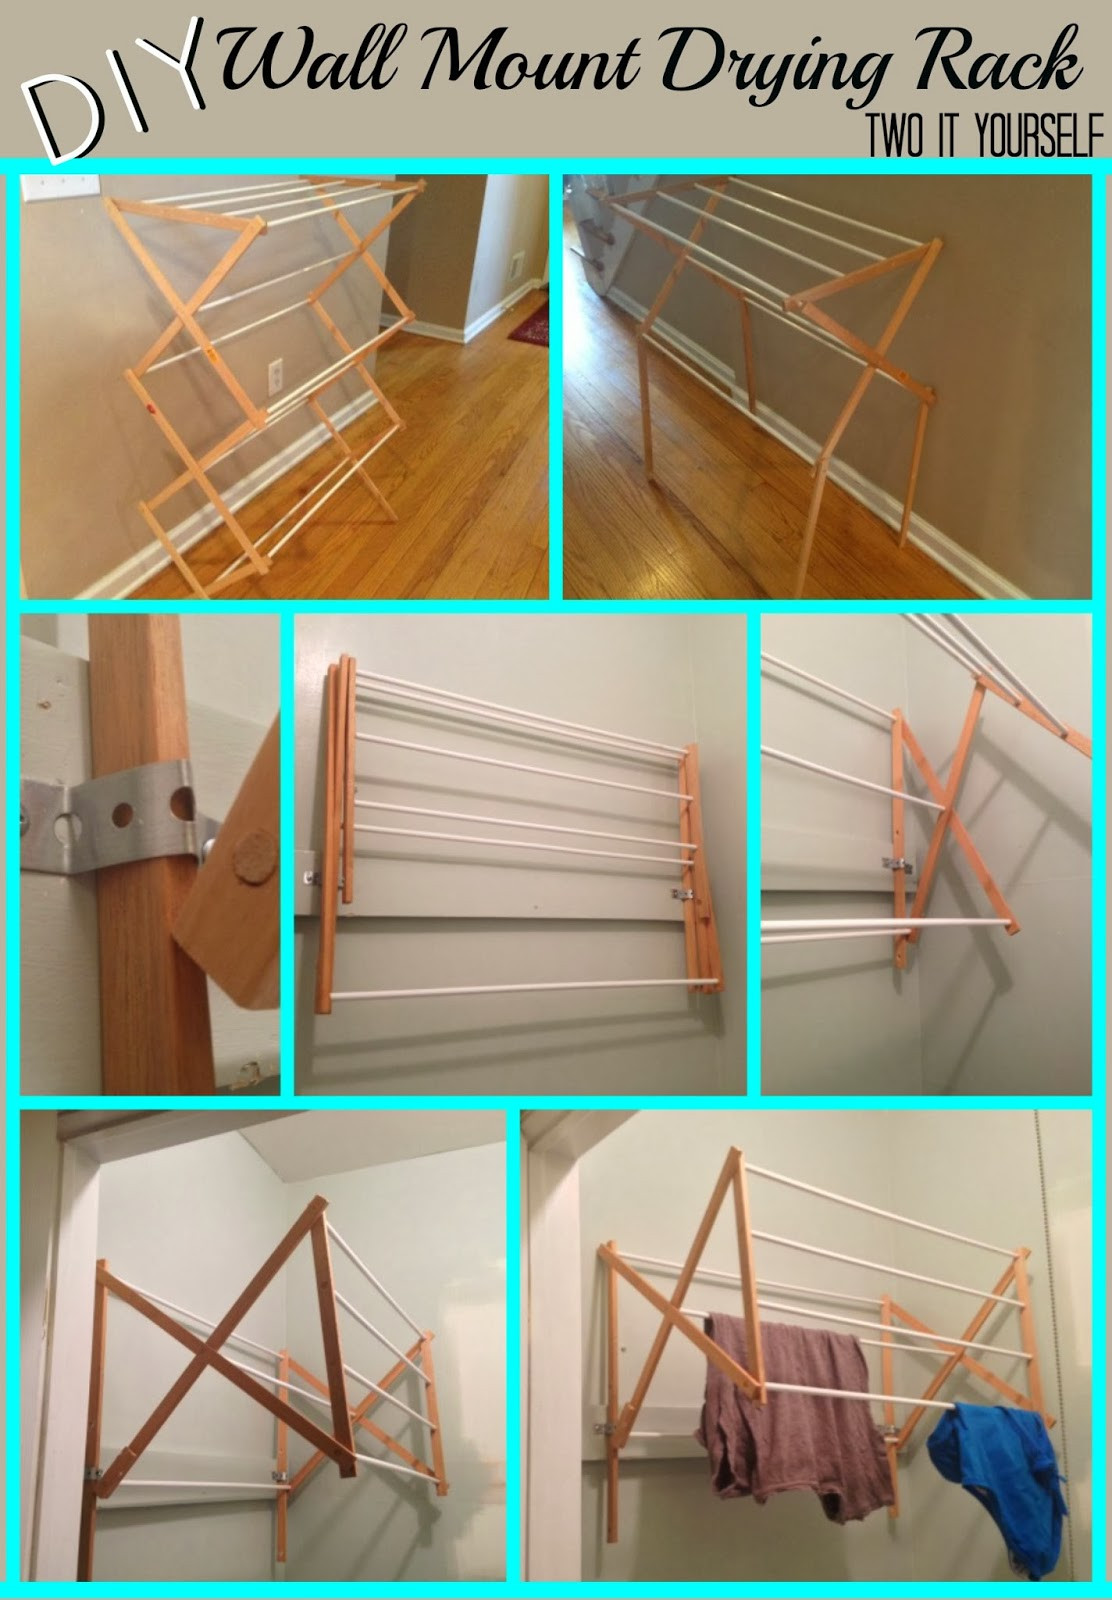 DIY Drying Rack  Two It Yourself DIY Laundry Drying Rack Wall Mount from